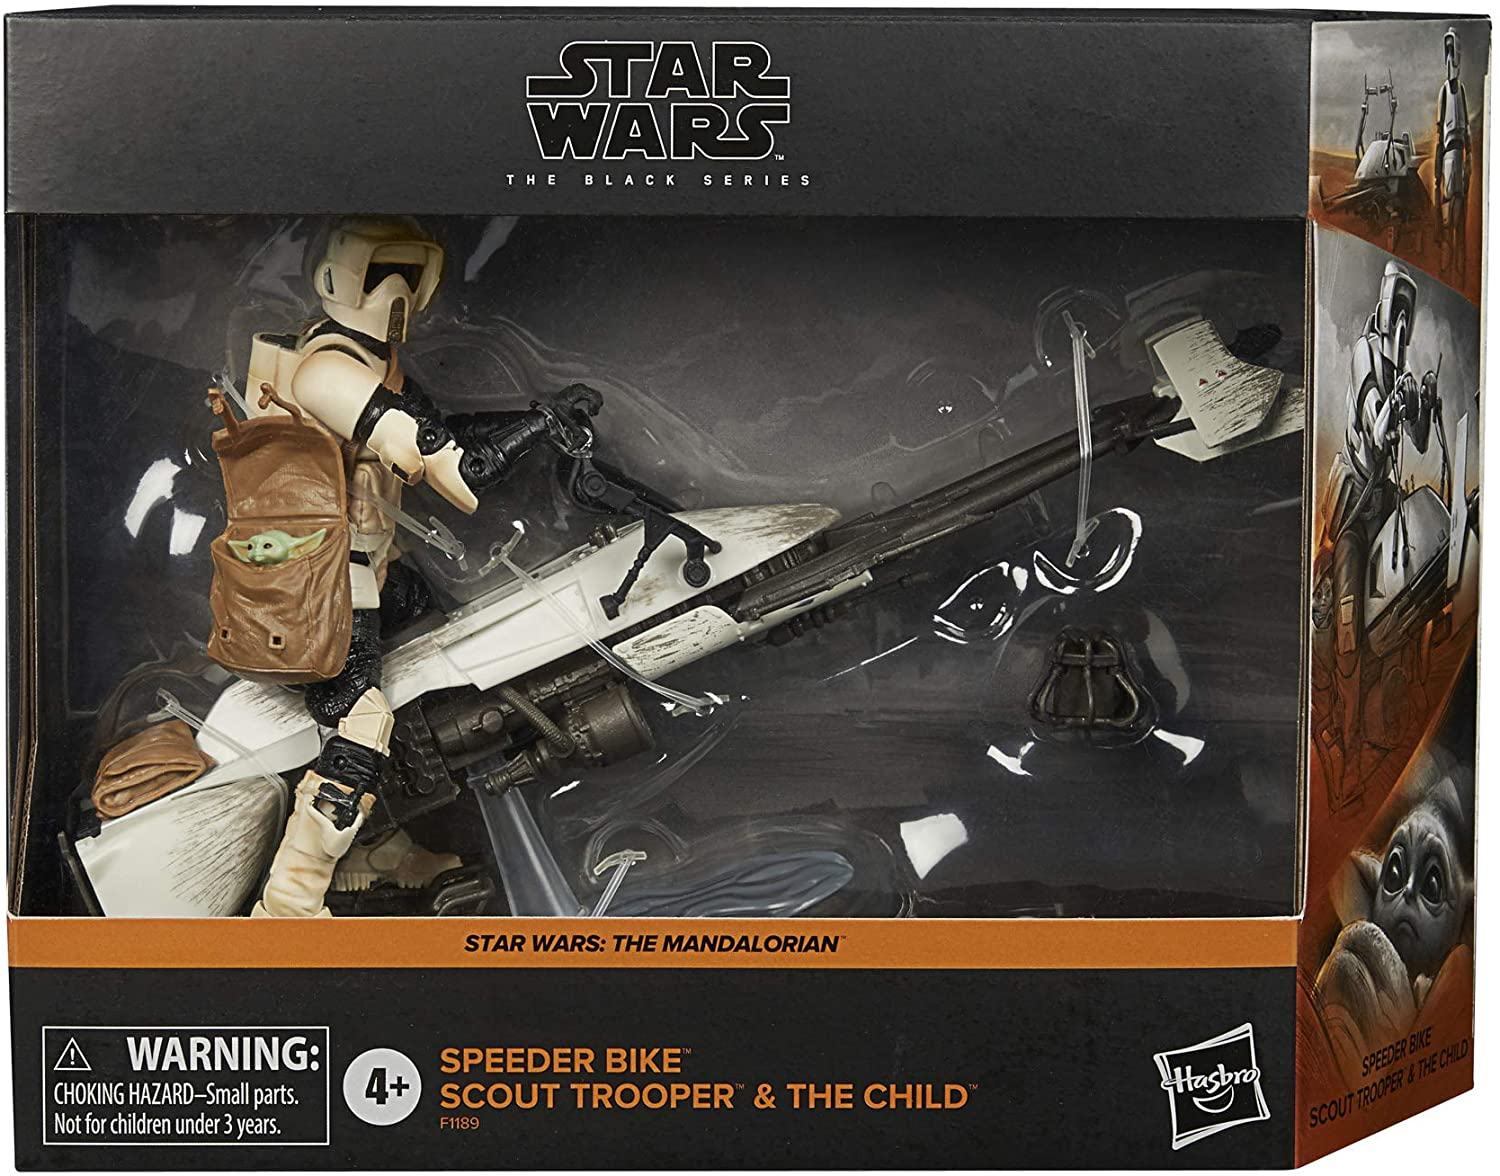 STAR WARS Hasbro The Black Series - Figuras a Escala de 15 cm de Speeder Bike Scout Trooper y The Child - The Mandalorian - Set de colección de Figura y vehículo